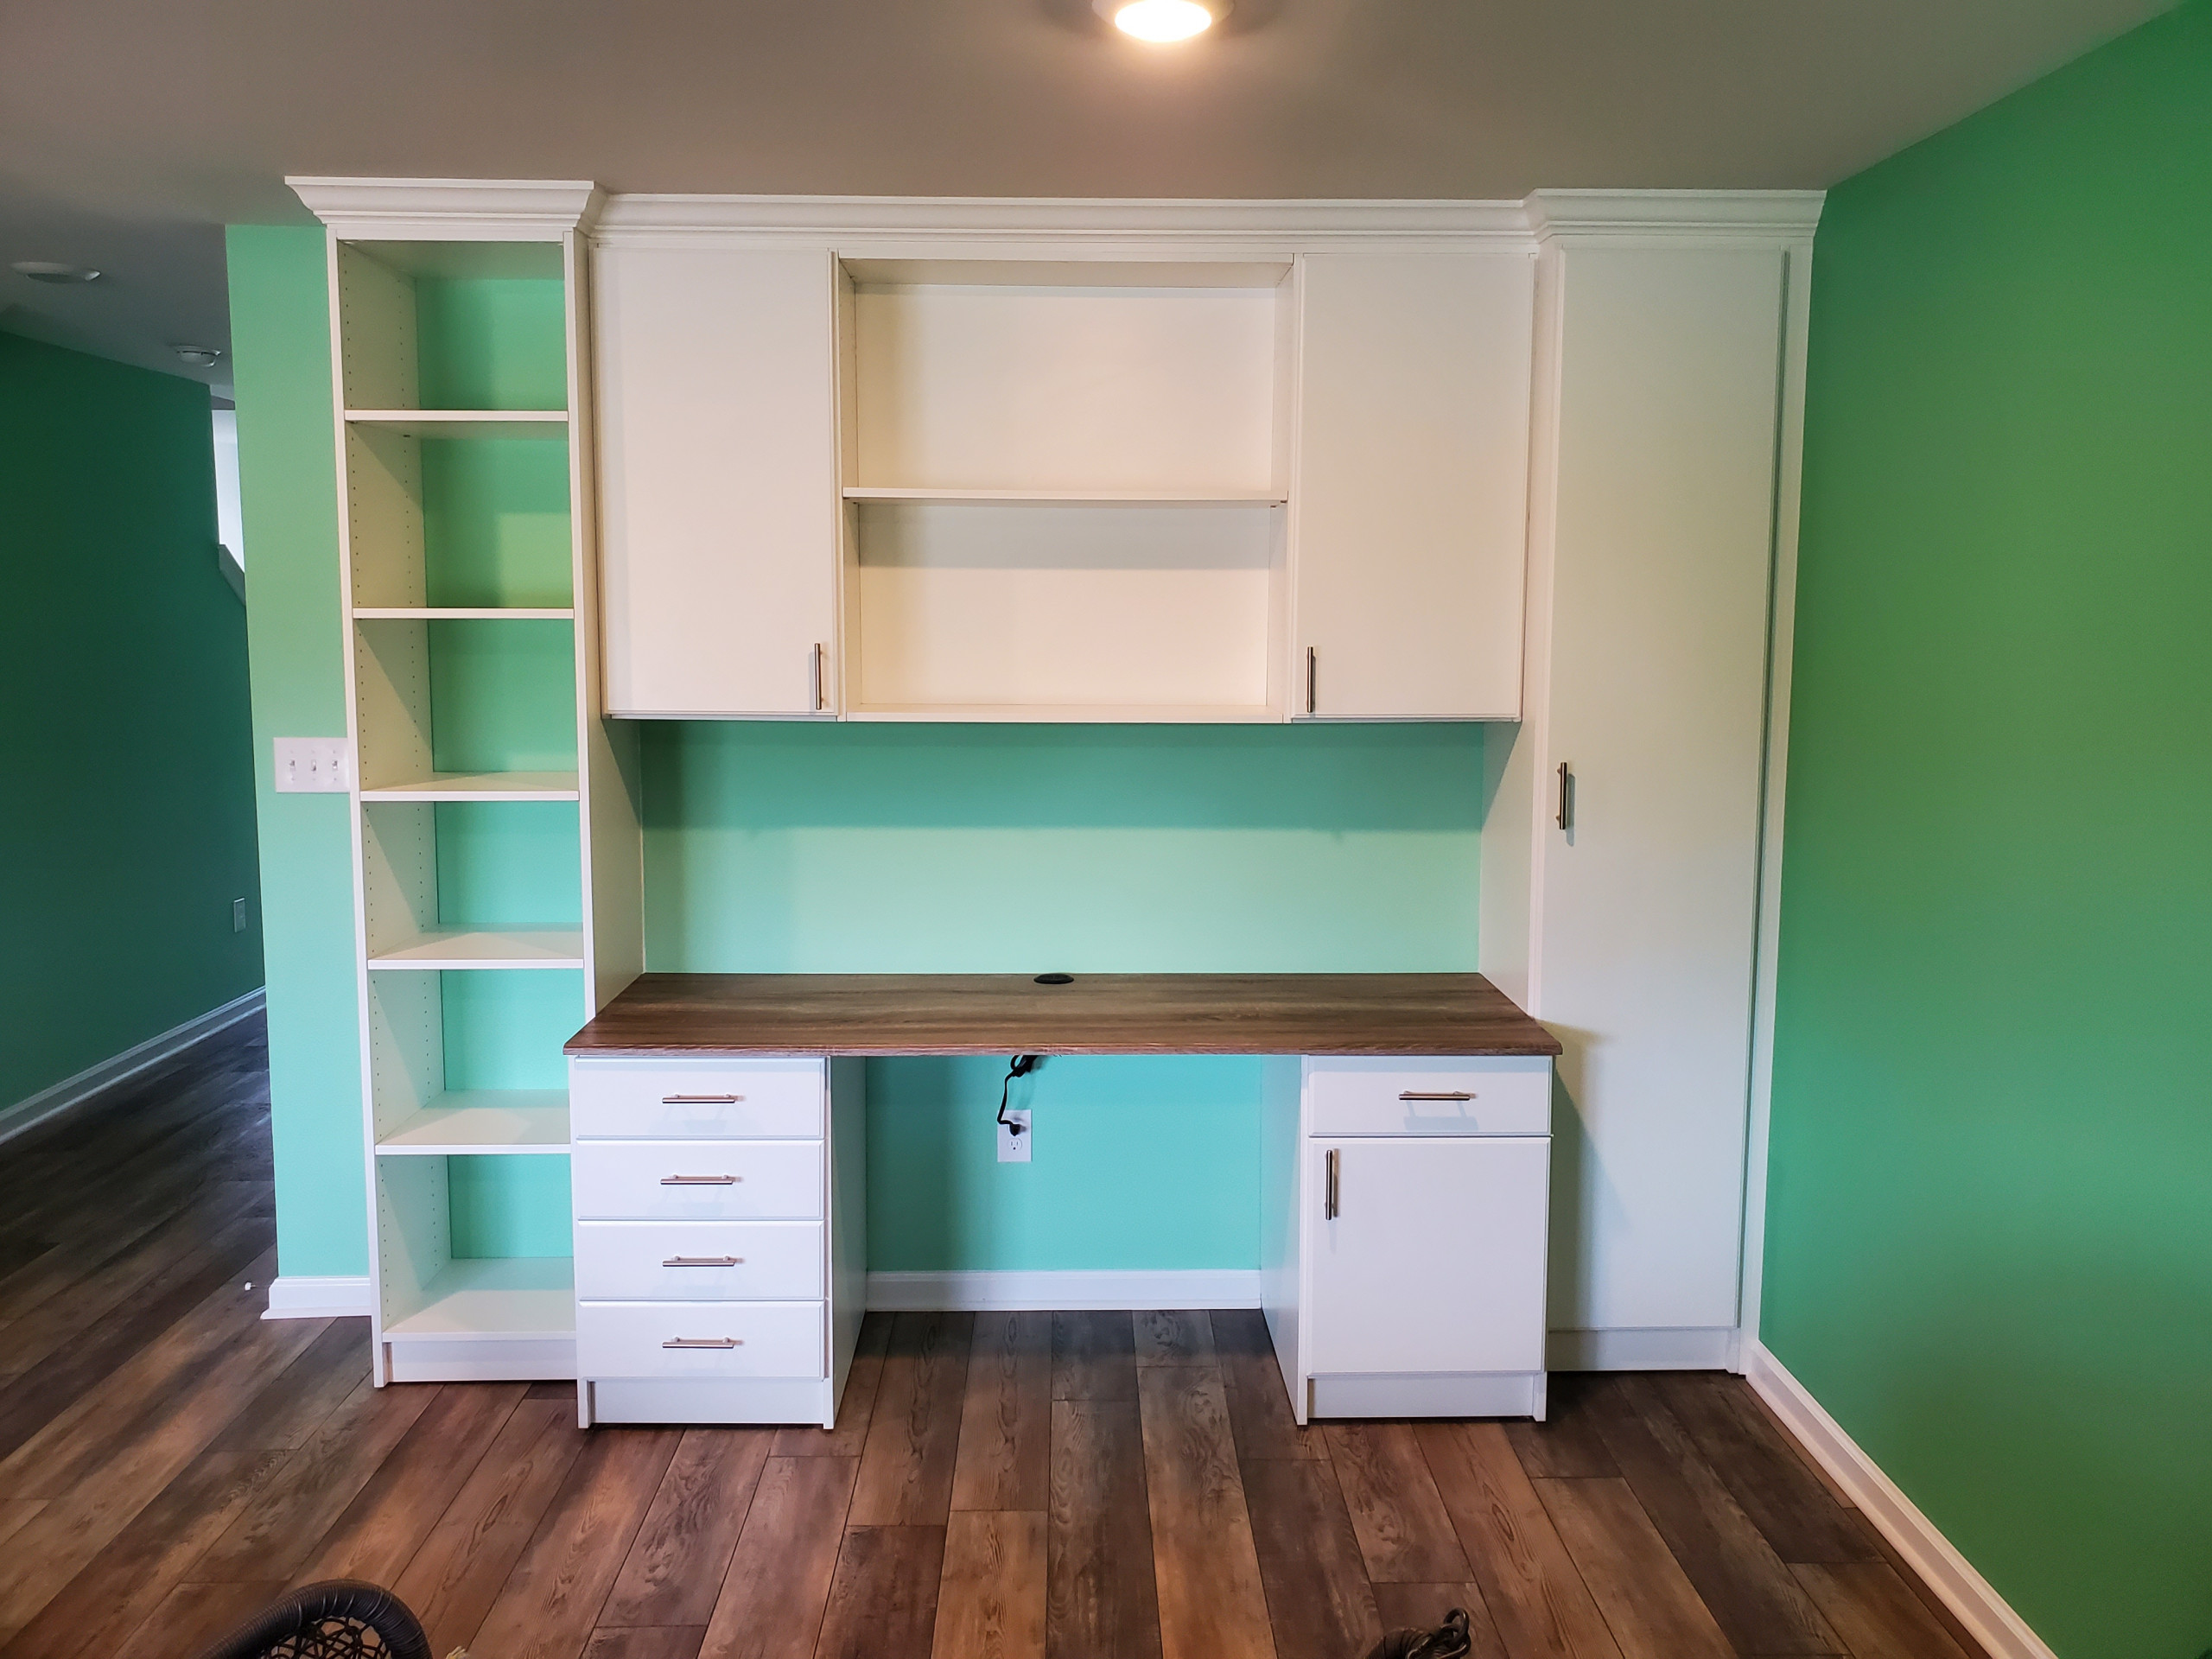 Wall desk in a family room.  Needed more space due to Covid.